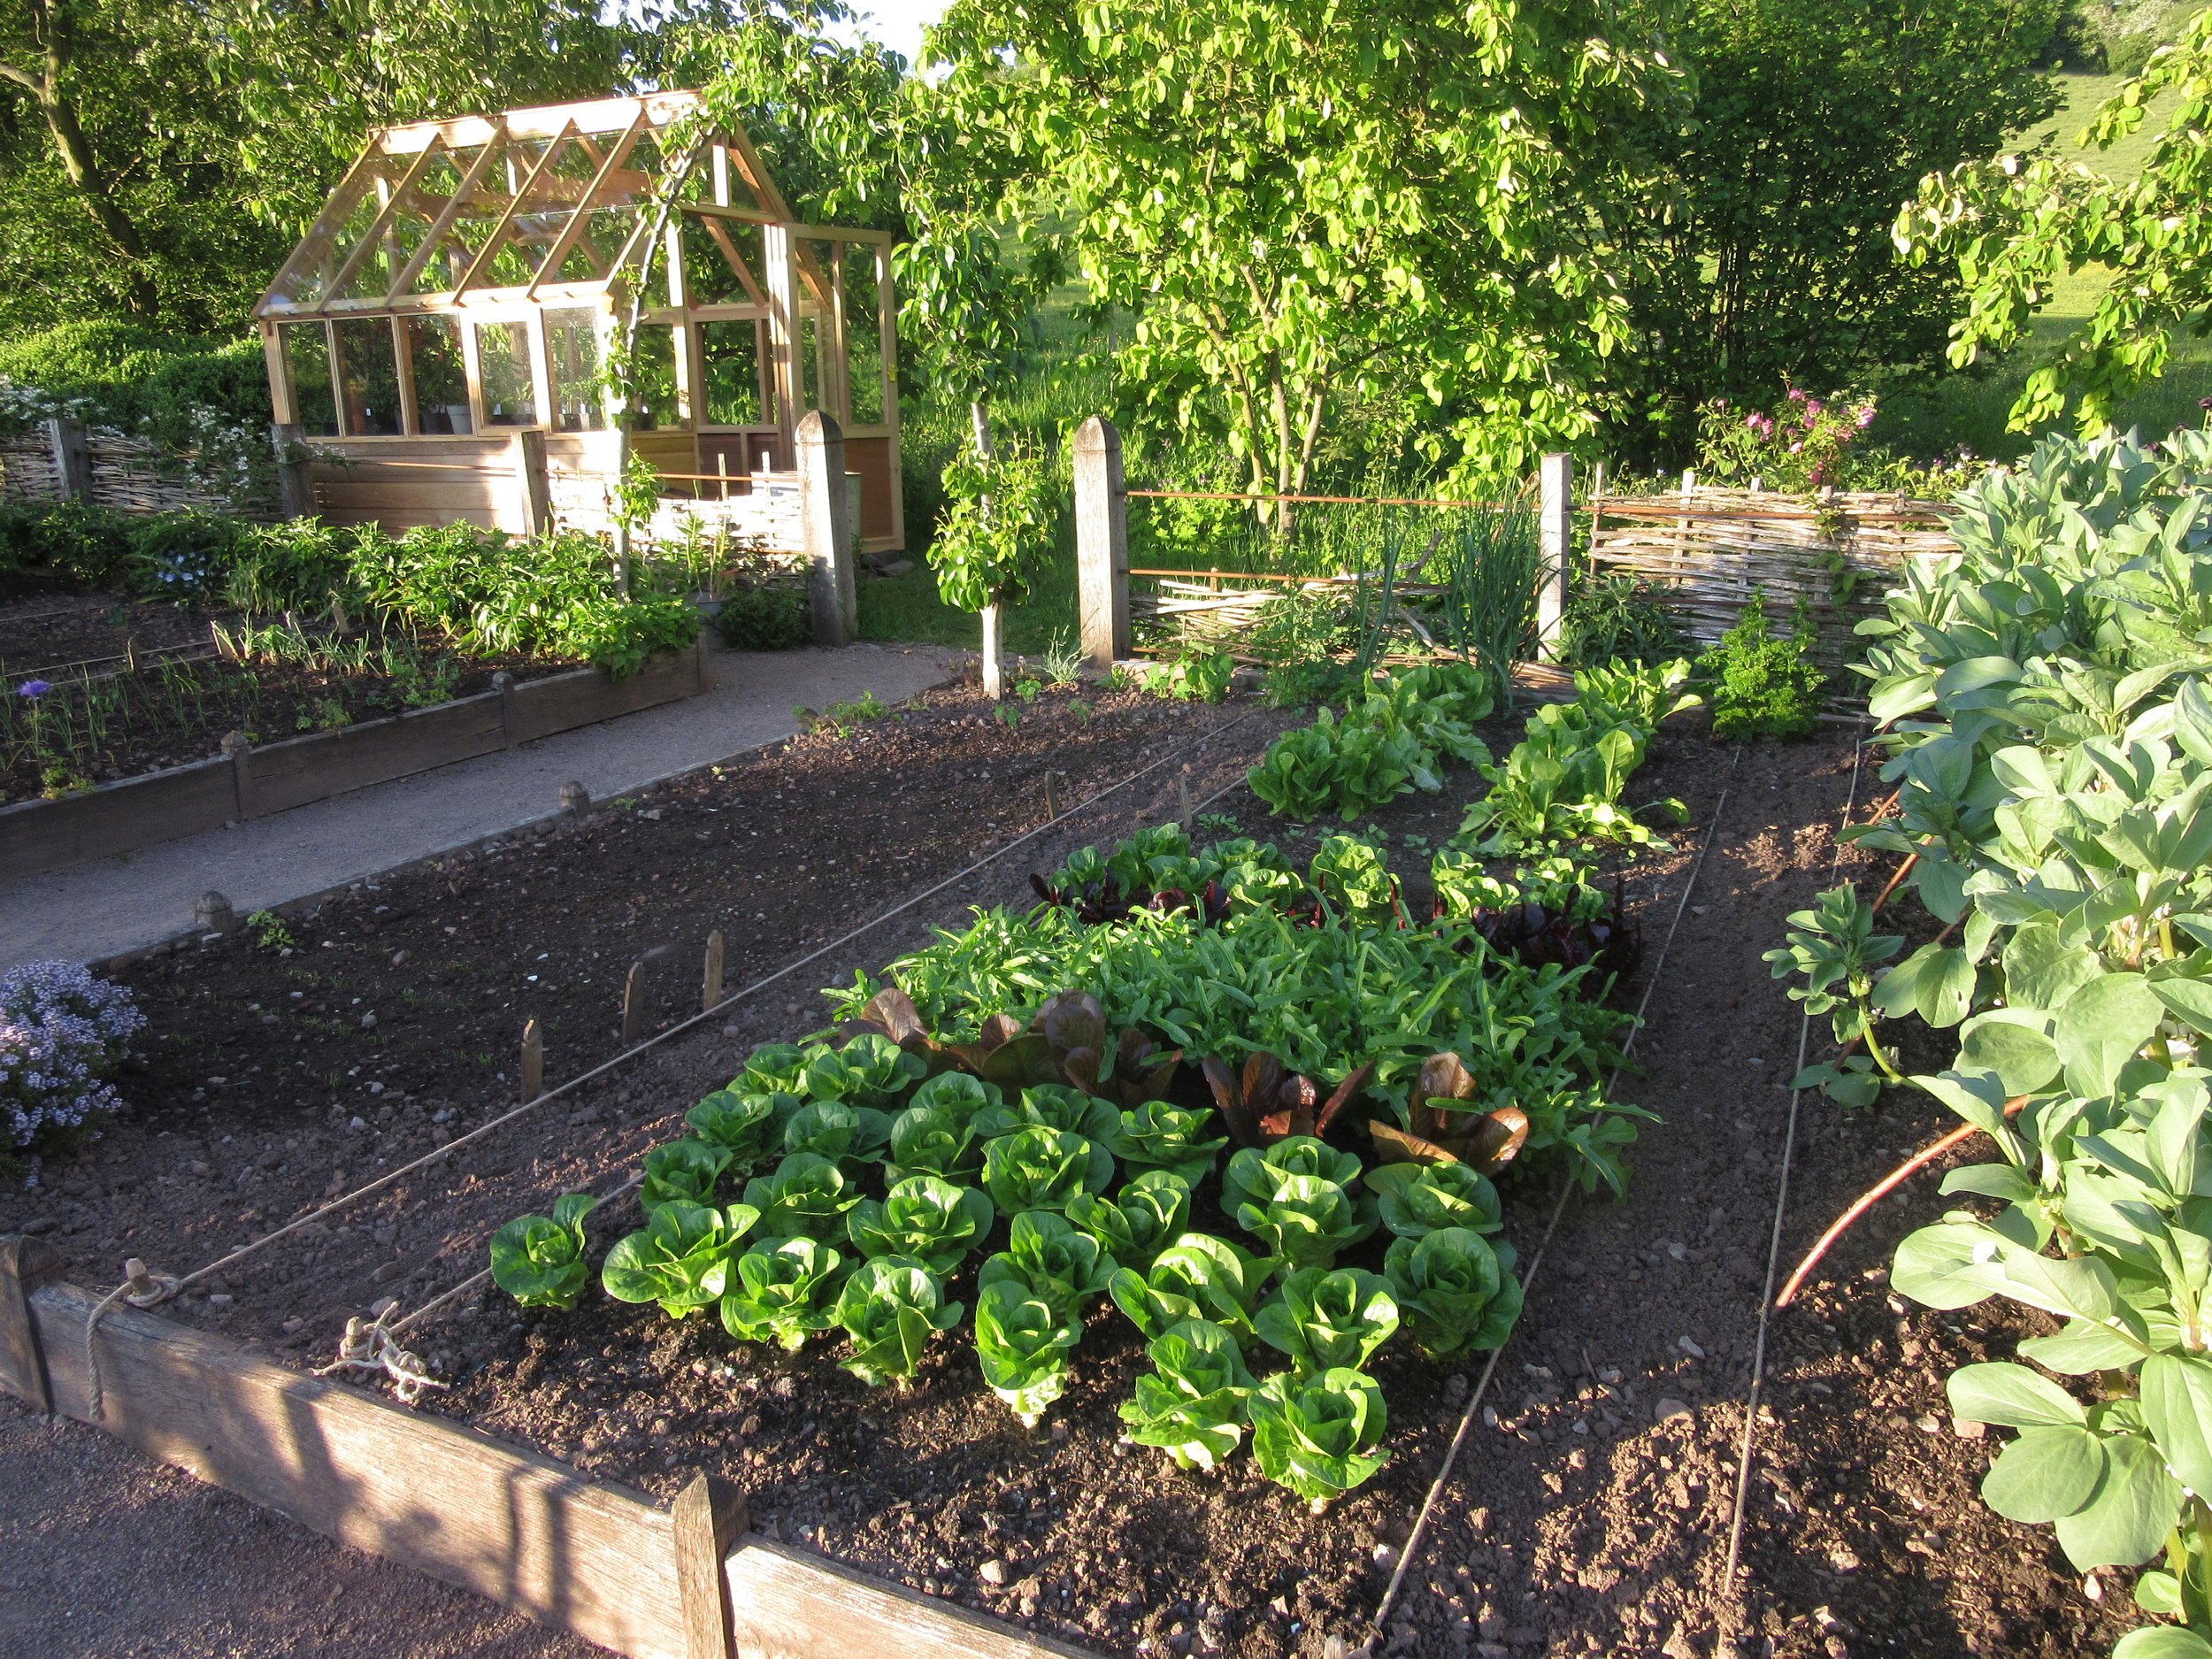 Low, wood raised beds in Arne Maynard kitchen garden. Image: Lorraine Young/Verve Garden Design.